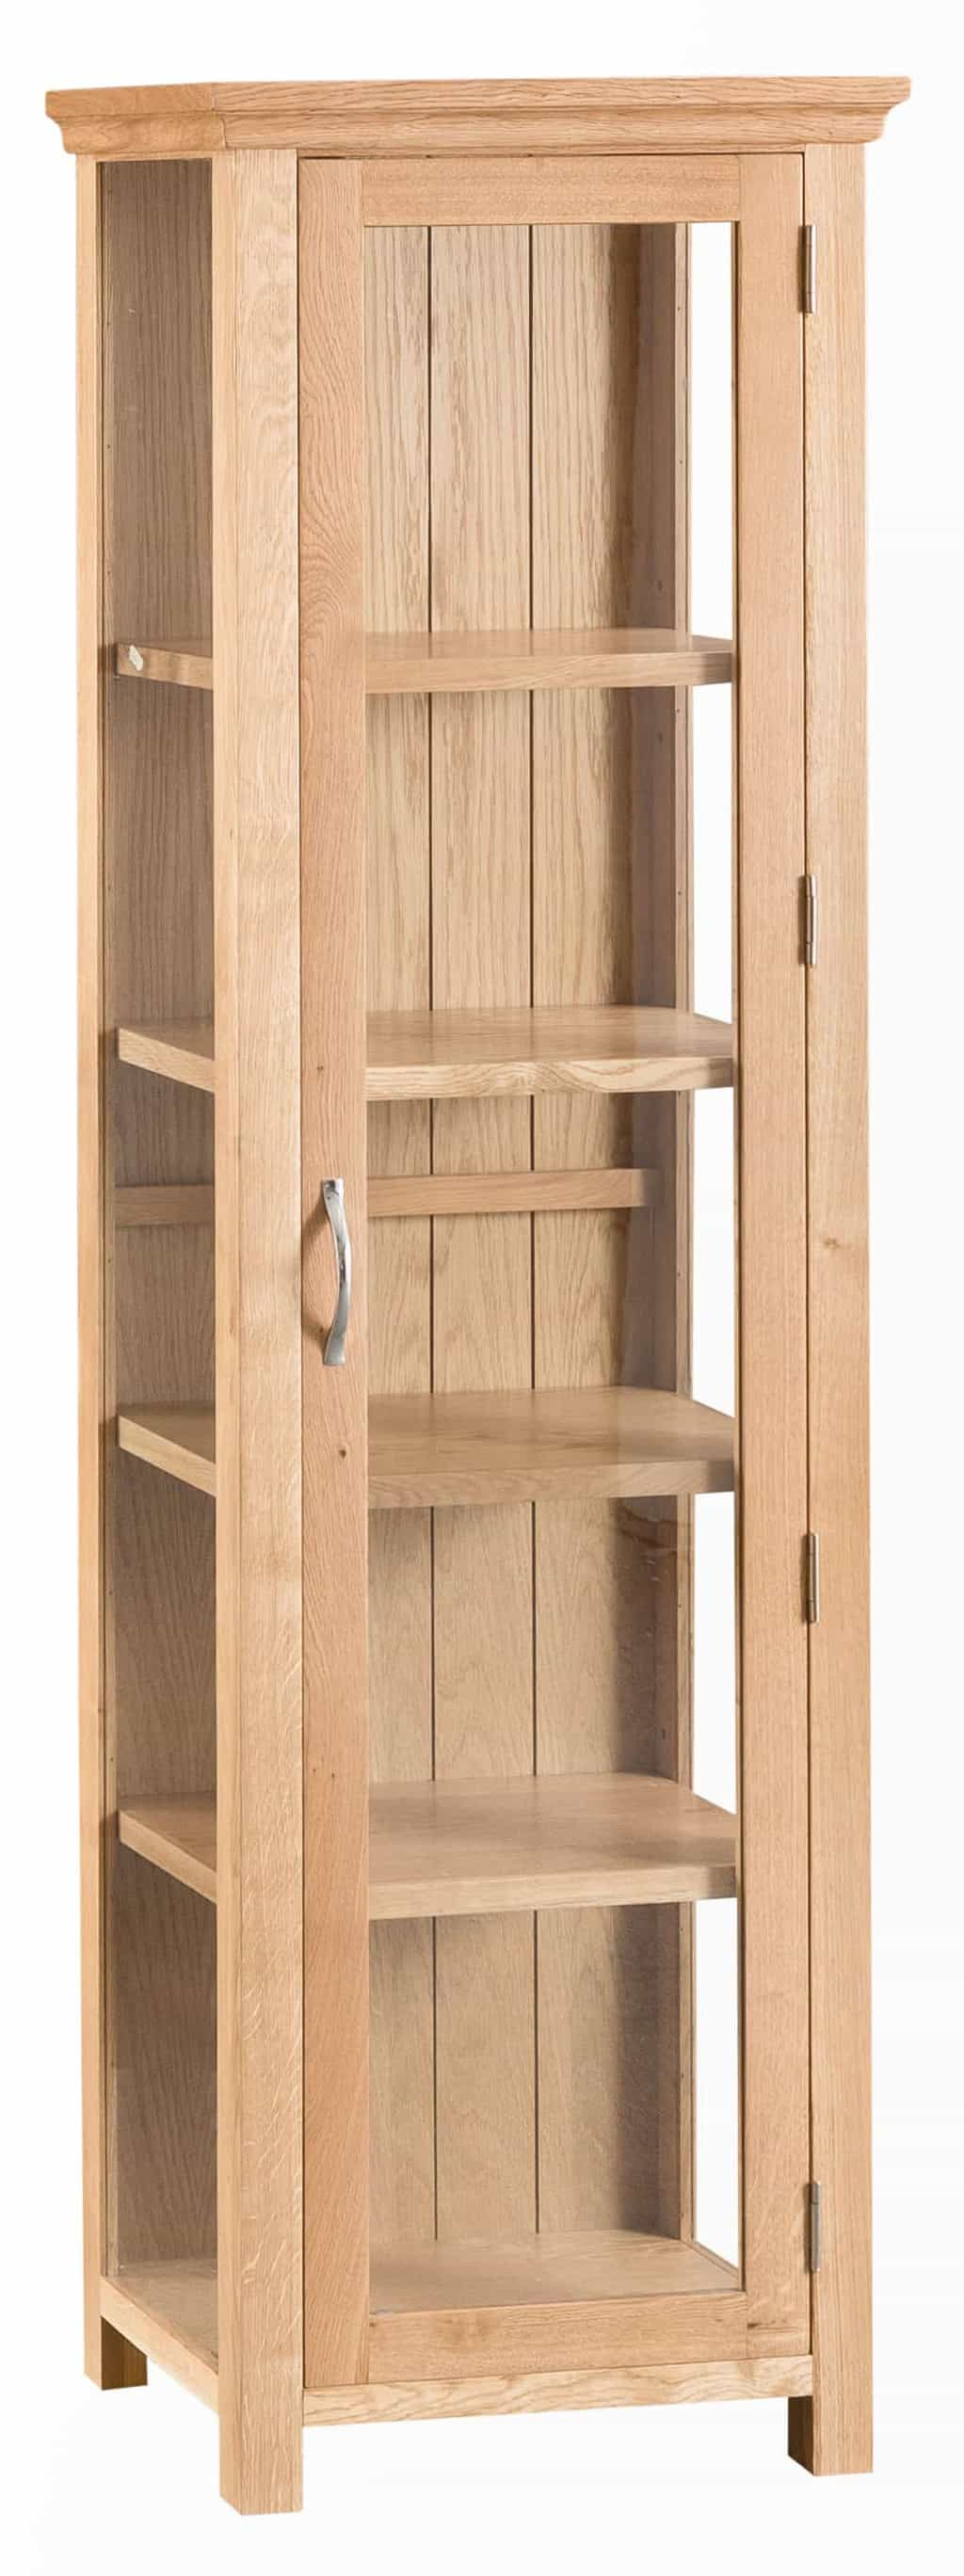 Warwick Solid Oak Narrow Slim Glass Display Cabinet Unit